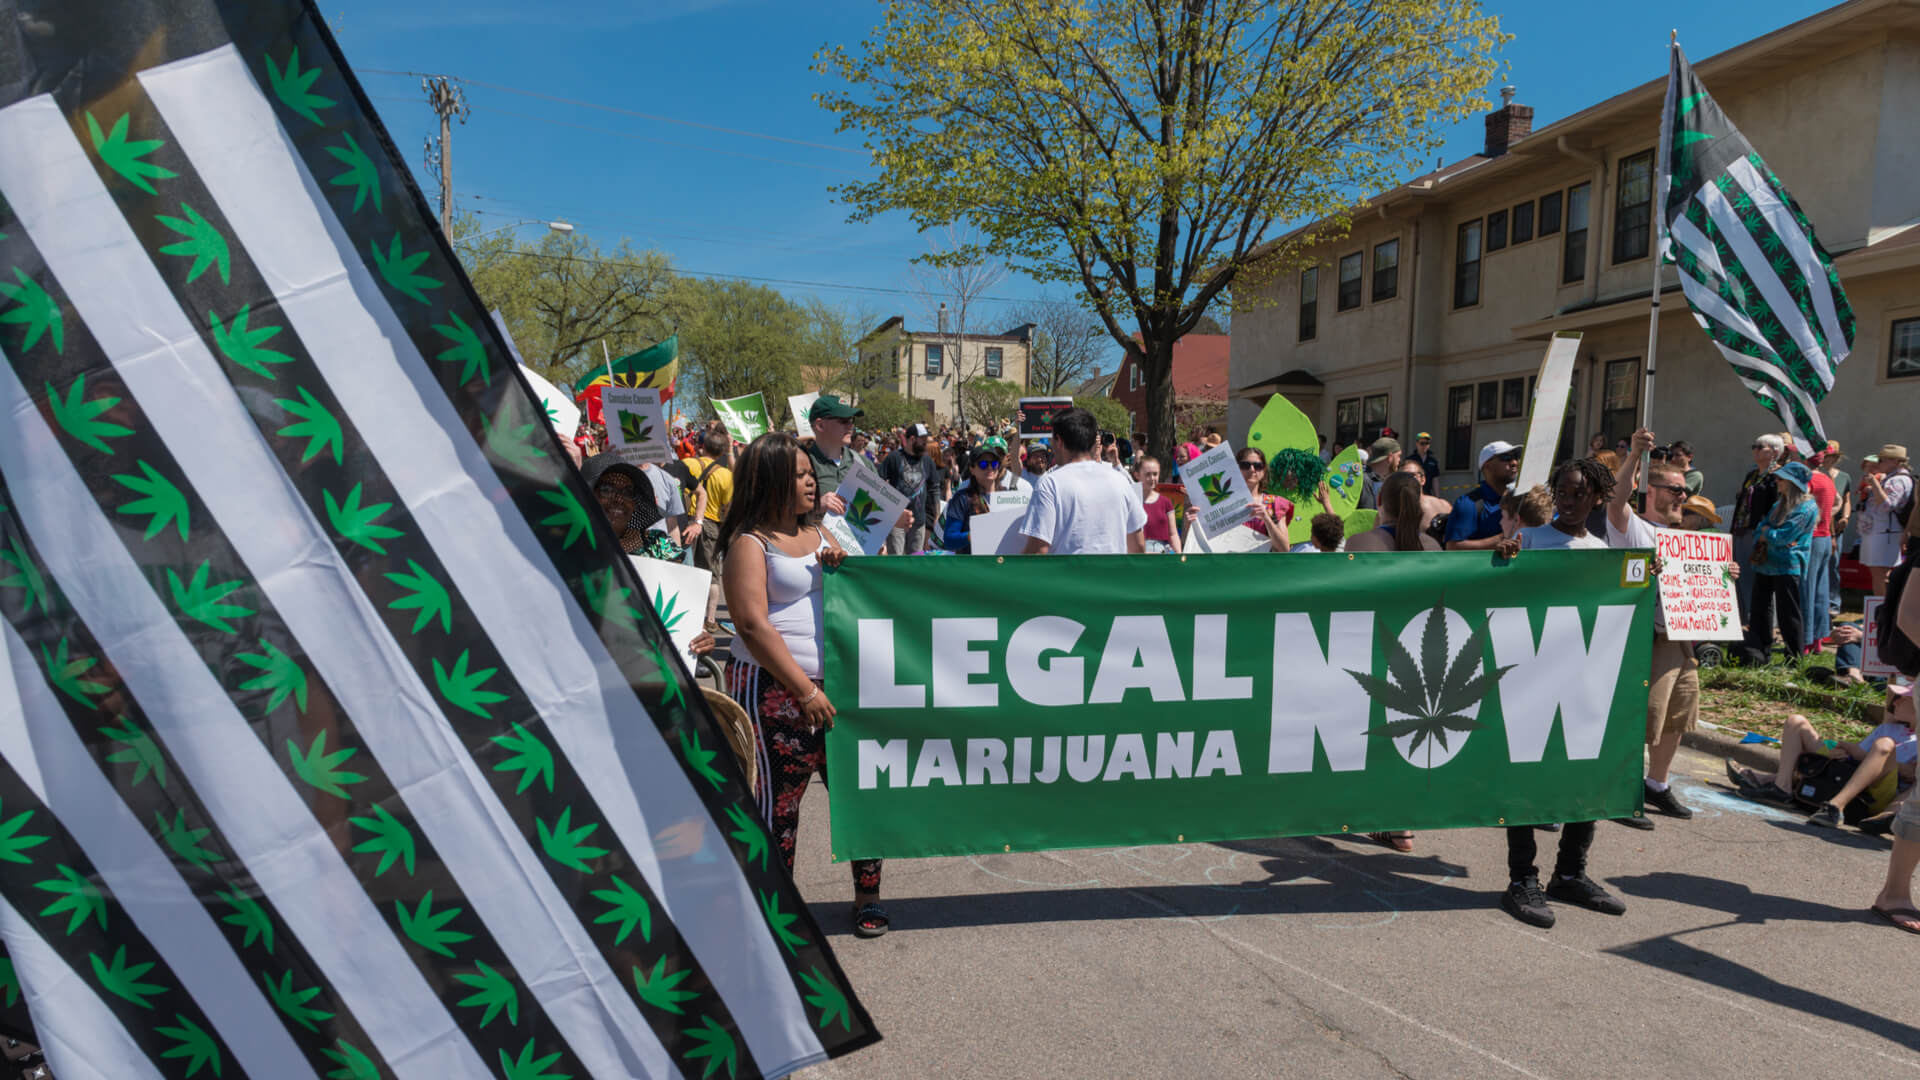 People advocating for the legalization of marijuana in Minneapolis